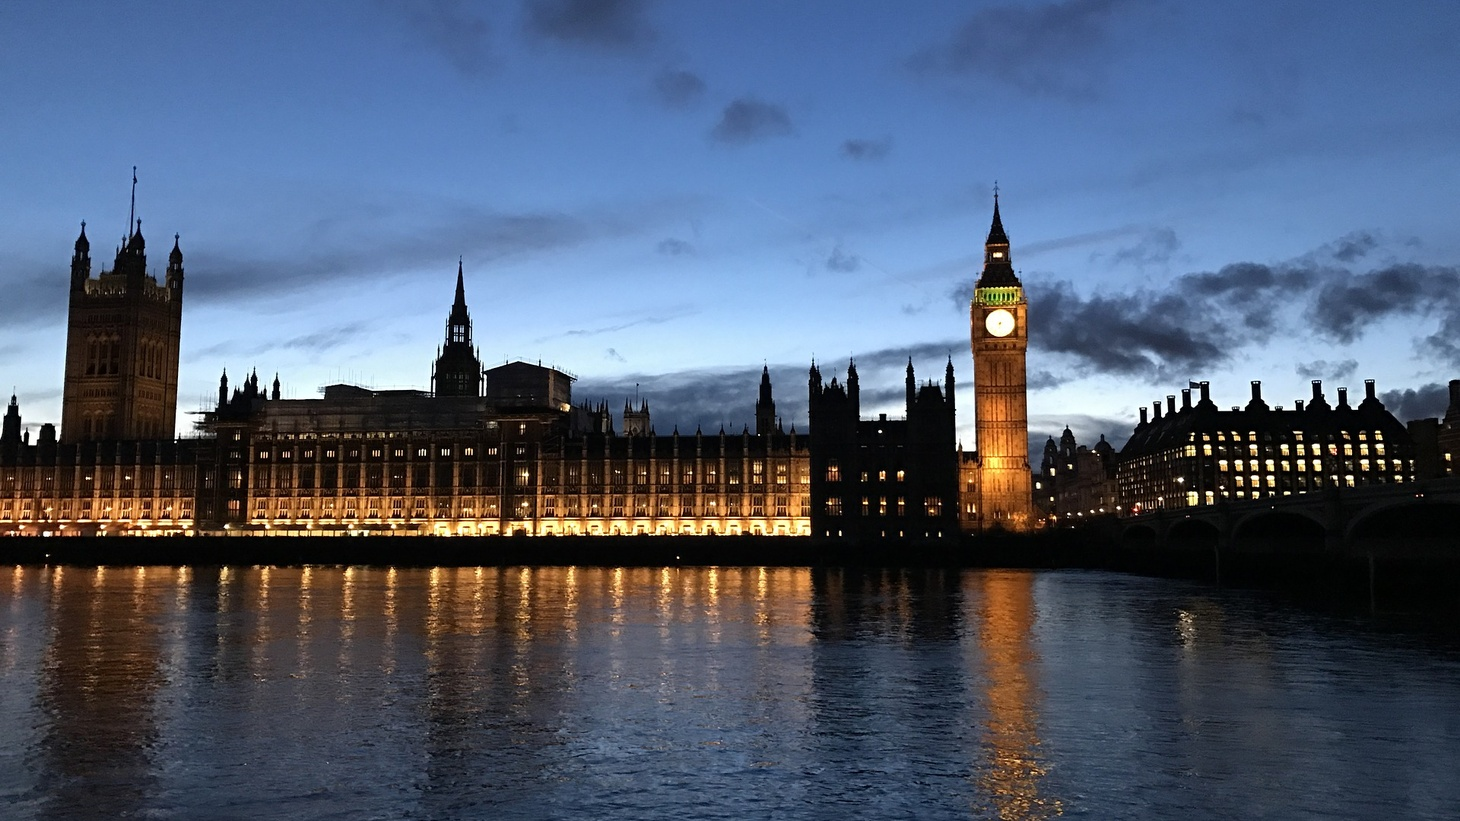 The Palace of Westminster.